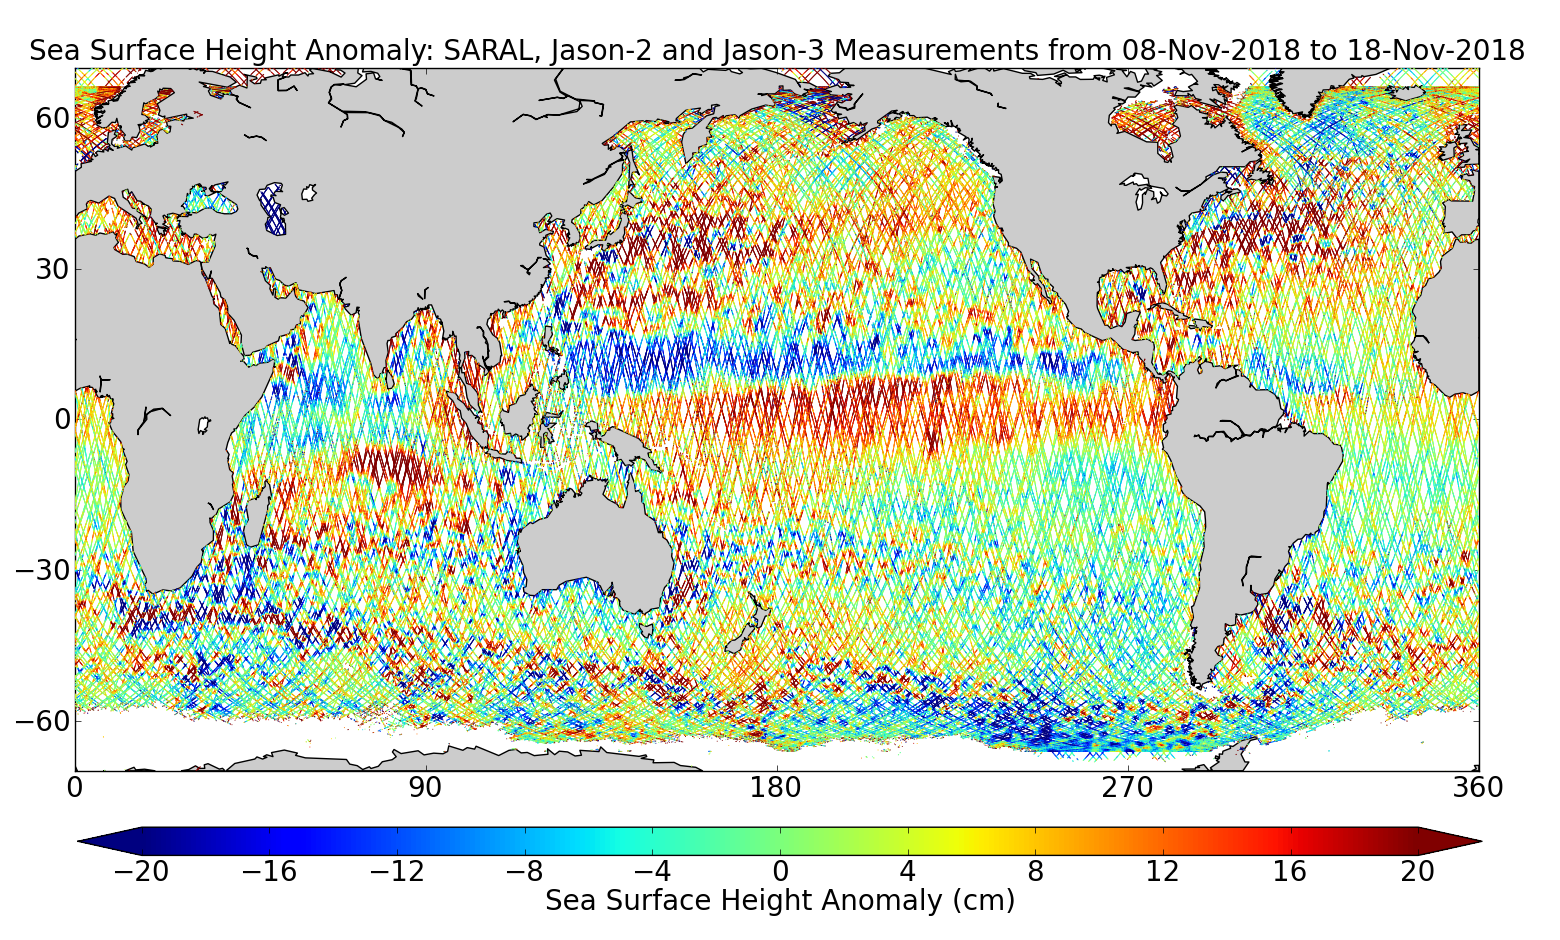 Sea Surface Height Anomaly: SARAL, Jason-2 and Jason-3 Measurements from 08-Nov-2018 to 18-Nov-2018